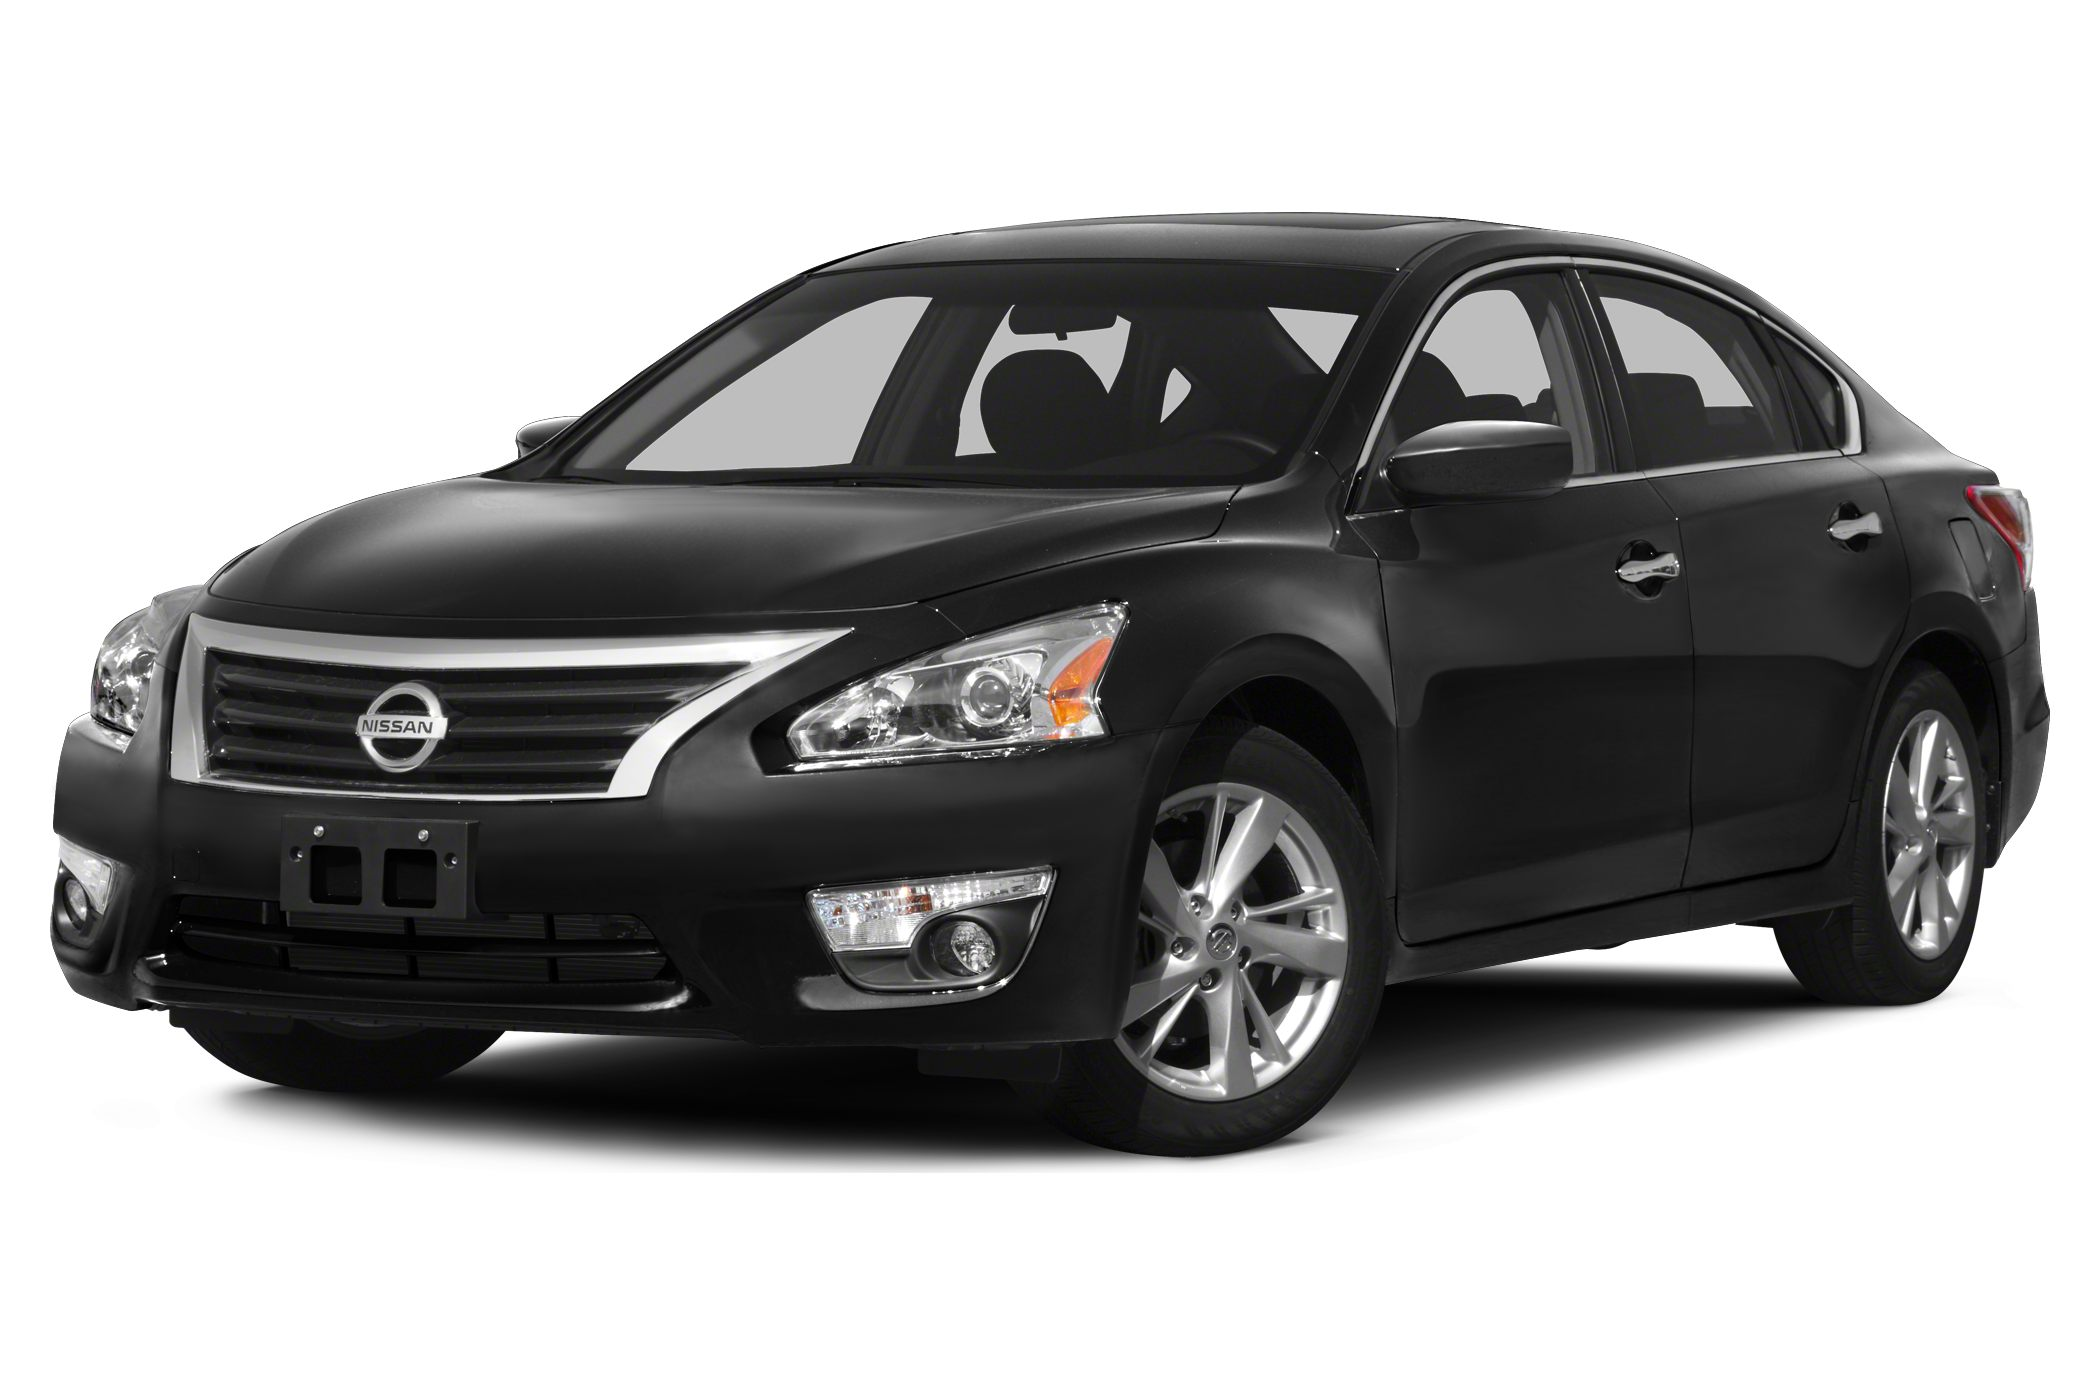 2013 Nissan Altima 3.5 SV Sedan for sale in LaGrange for $19,577 with 31,430 miles